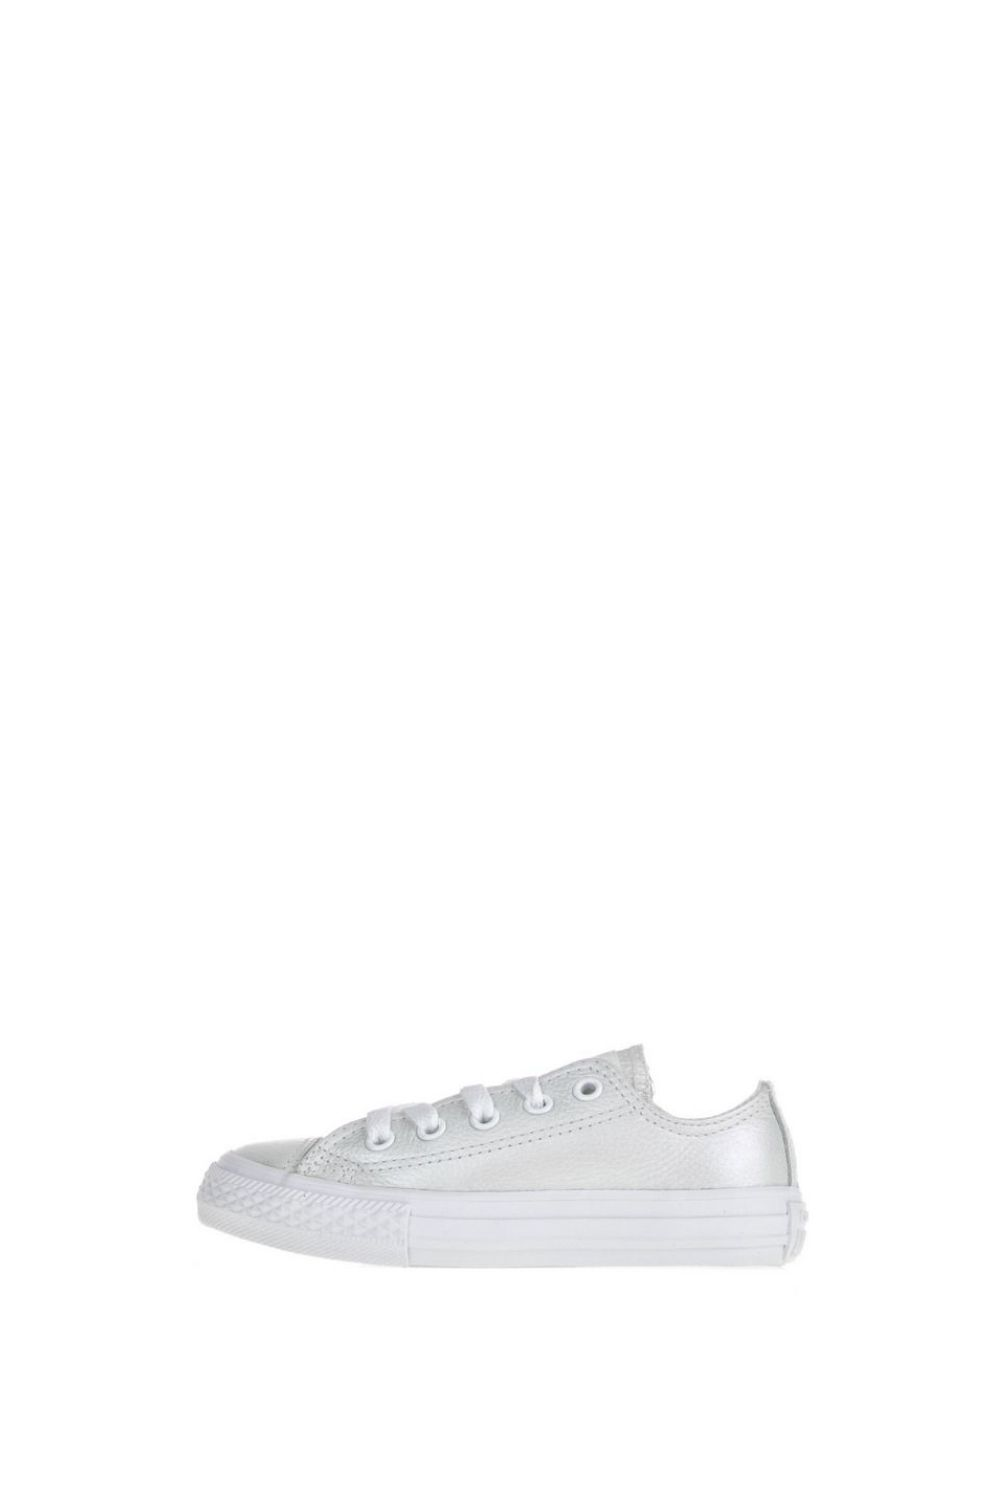 -48% Collective Online CONVERSE – Παιδικά δερμάτινα sneakers Chuck Taylor  All Star Ox λευκά 5bb4cb4393b